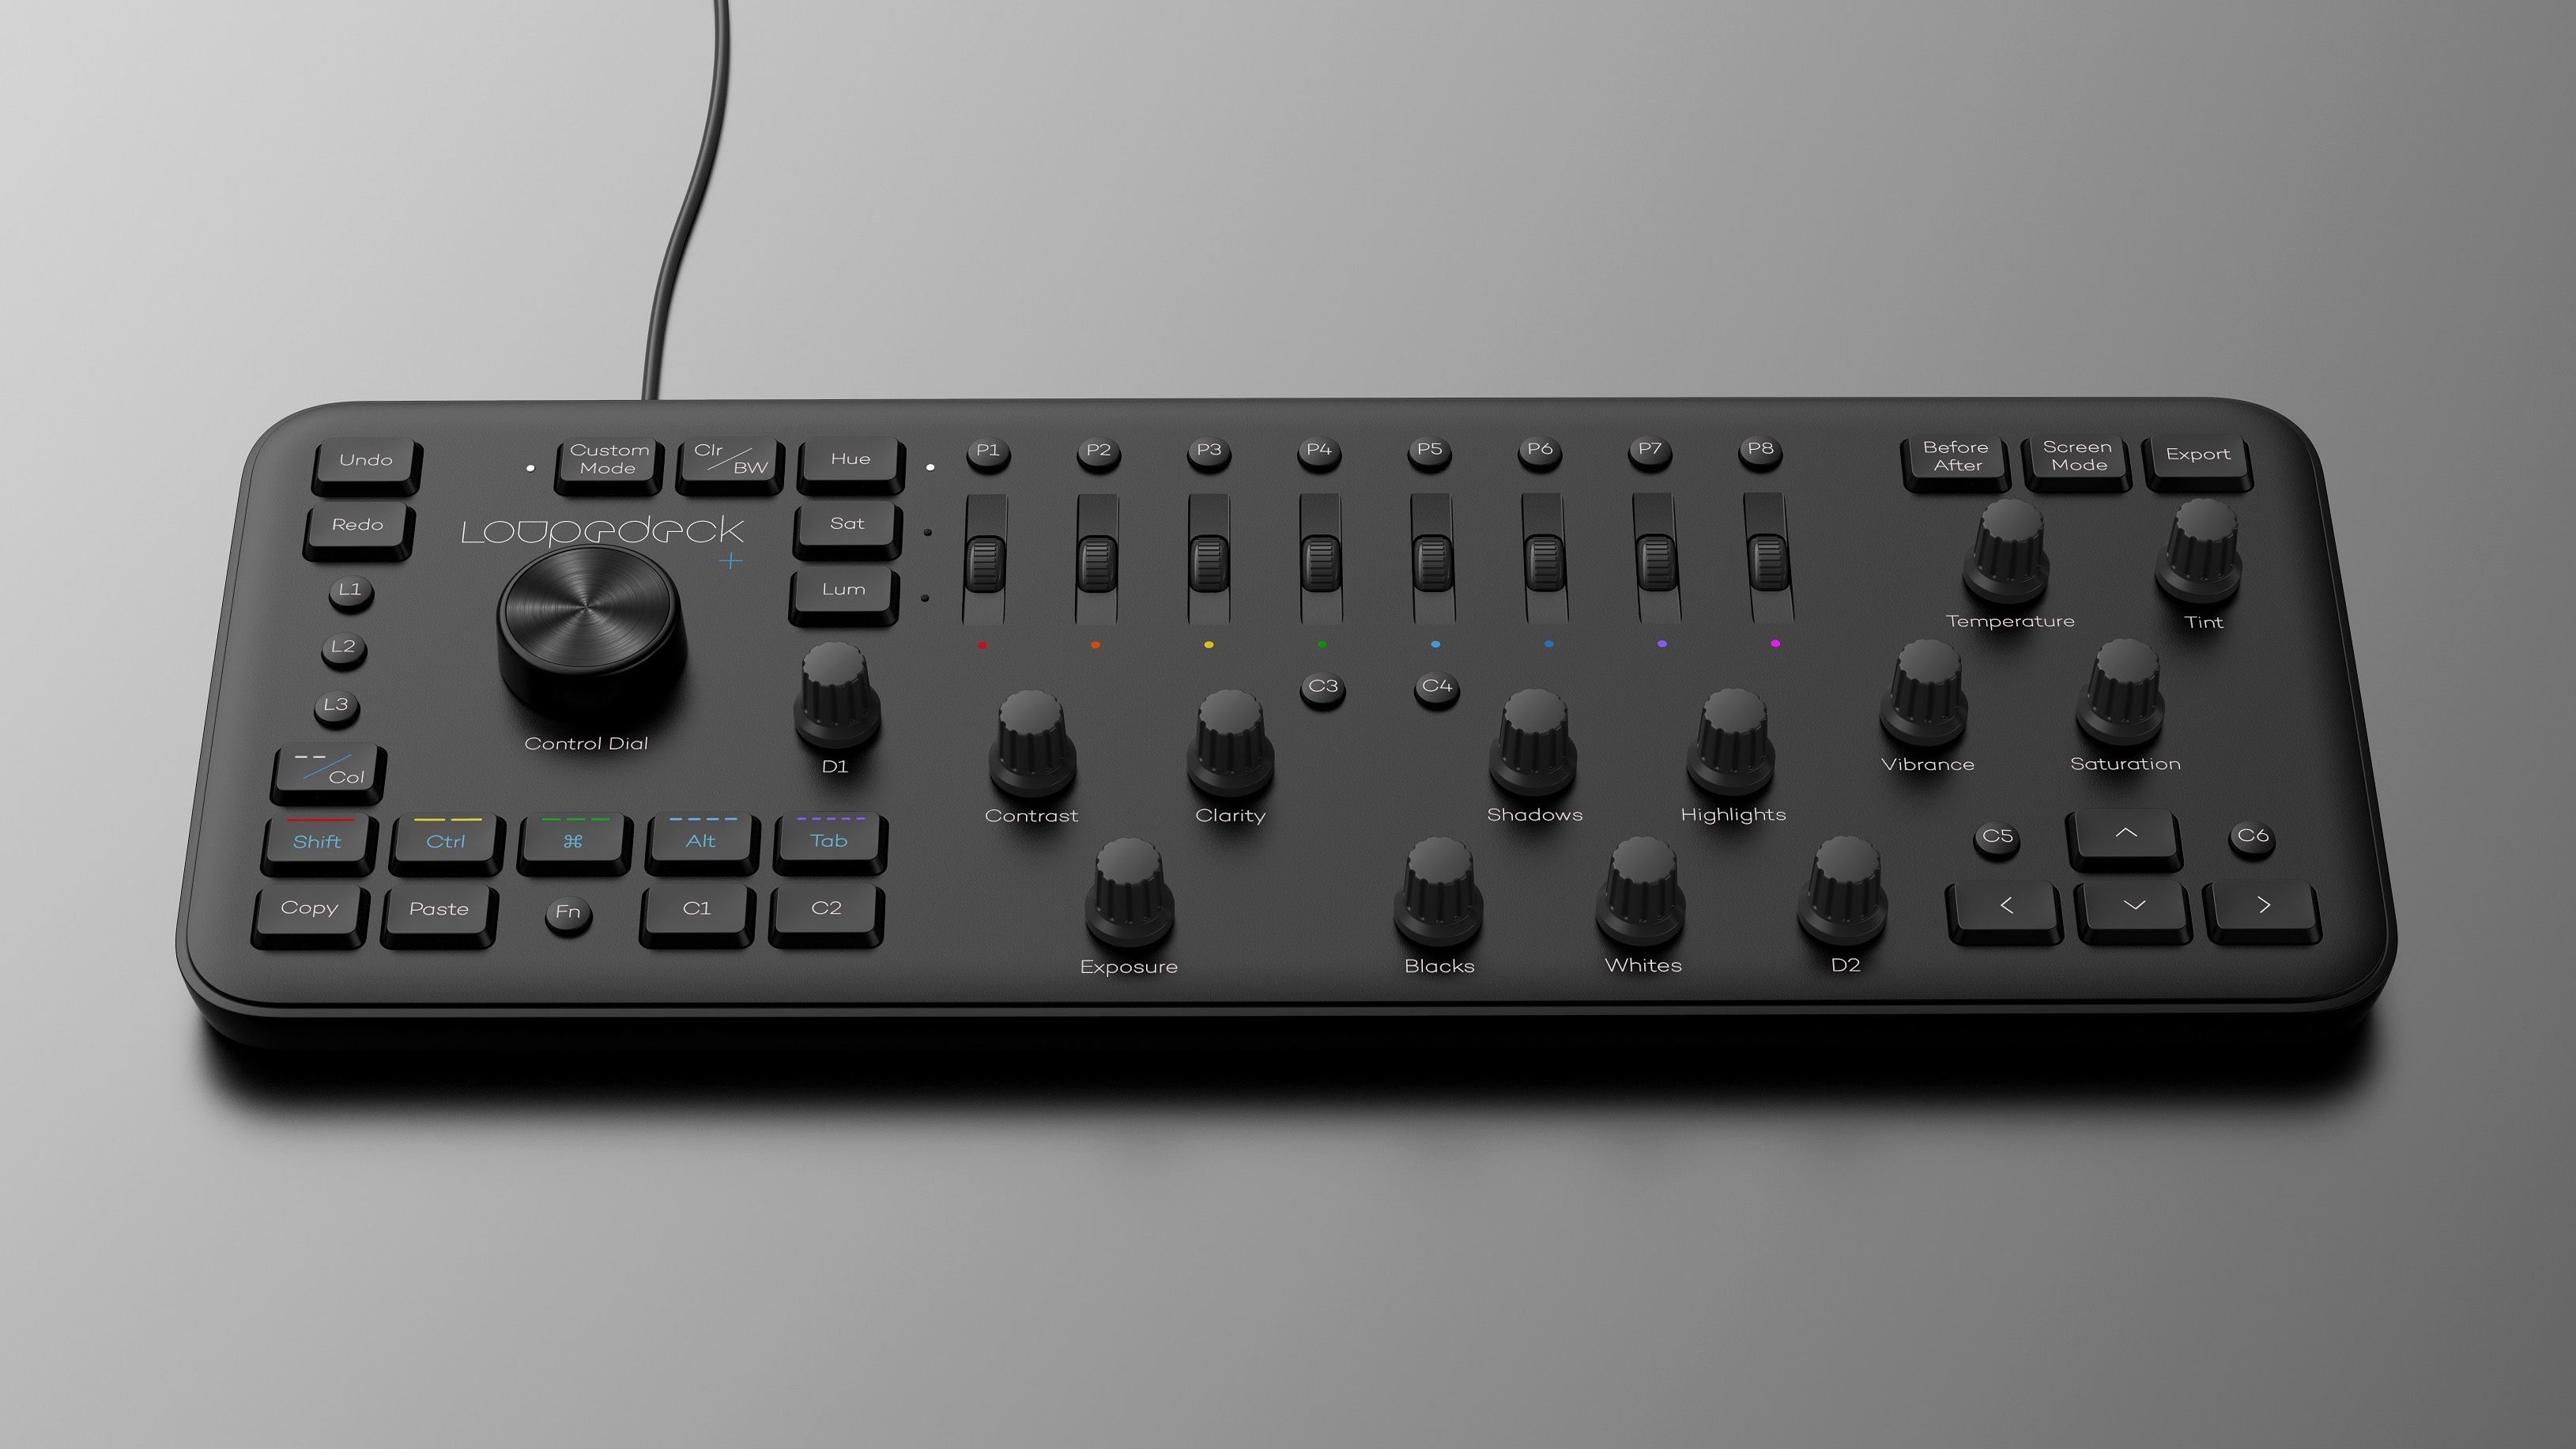 Loupedeck  promises to speed up your image-editing workflow